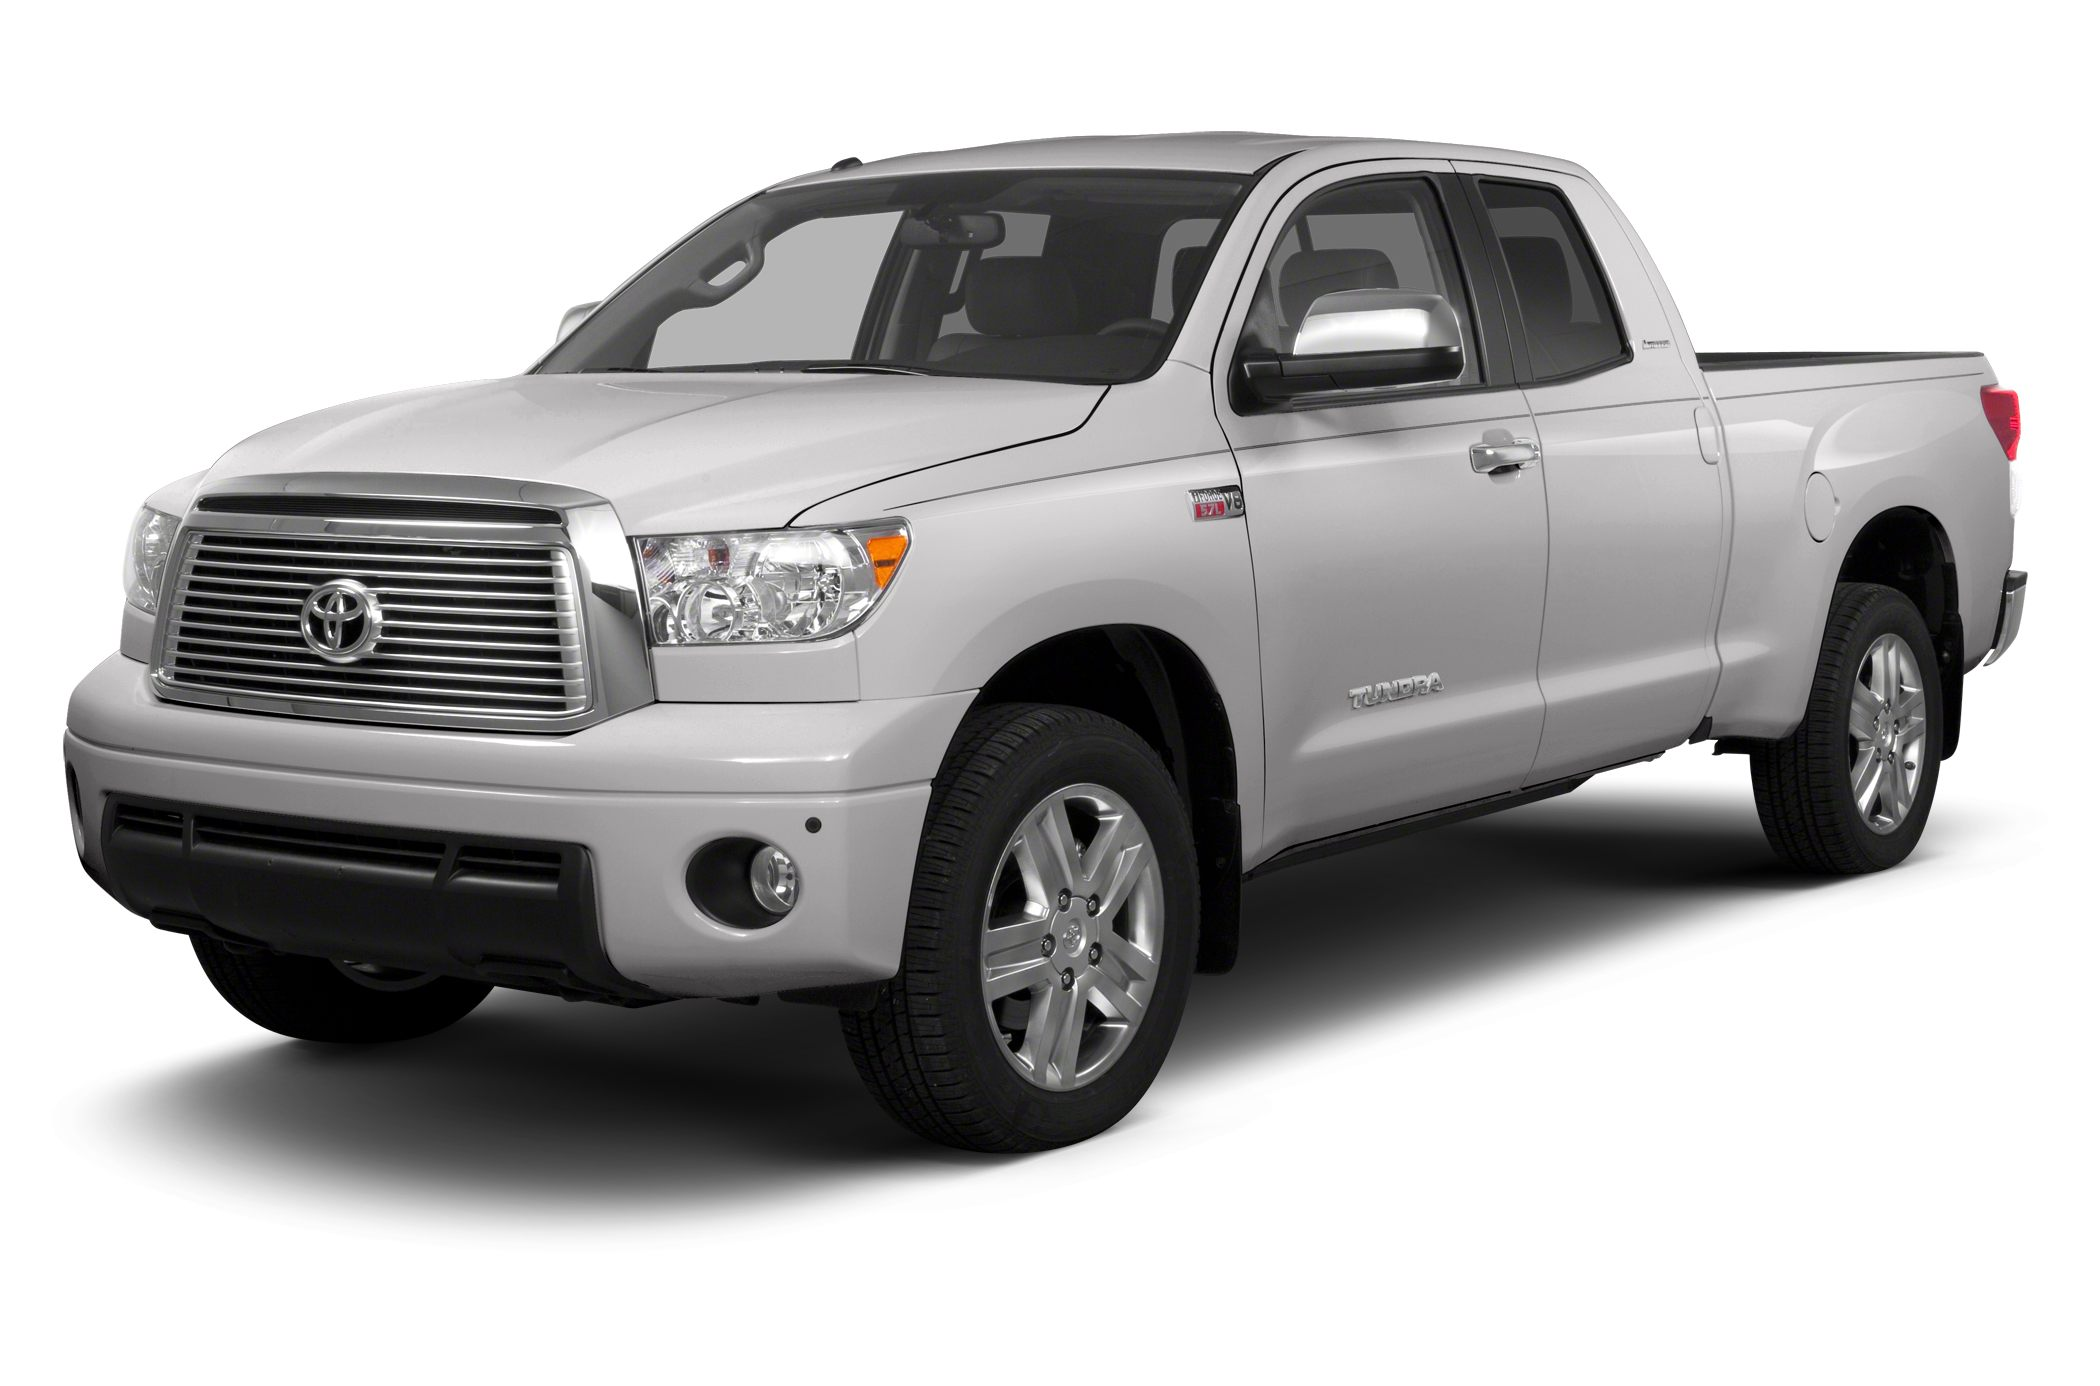 2013 Toyota Tundra Limited 5 7l V8 4x4 Double Cab 6 6 Ft Box 145 7 In Wb Specs And Prices